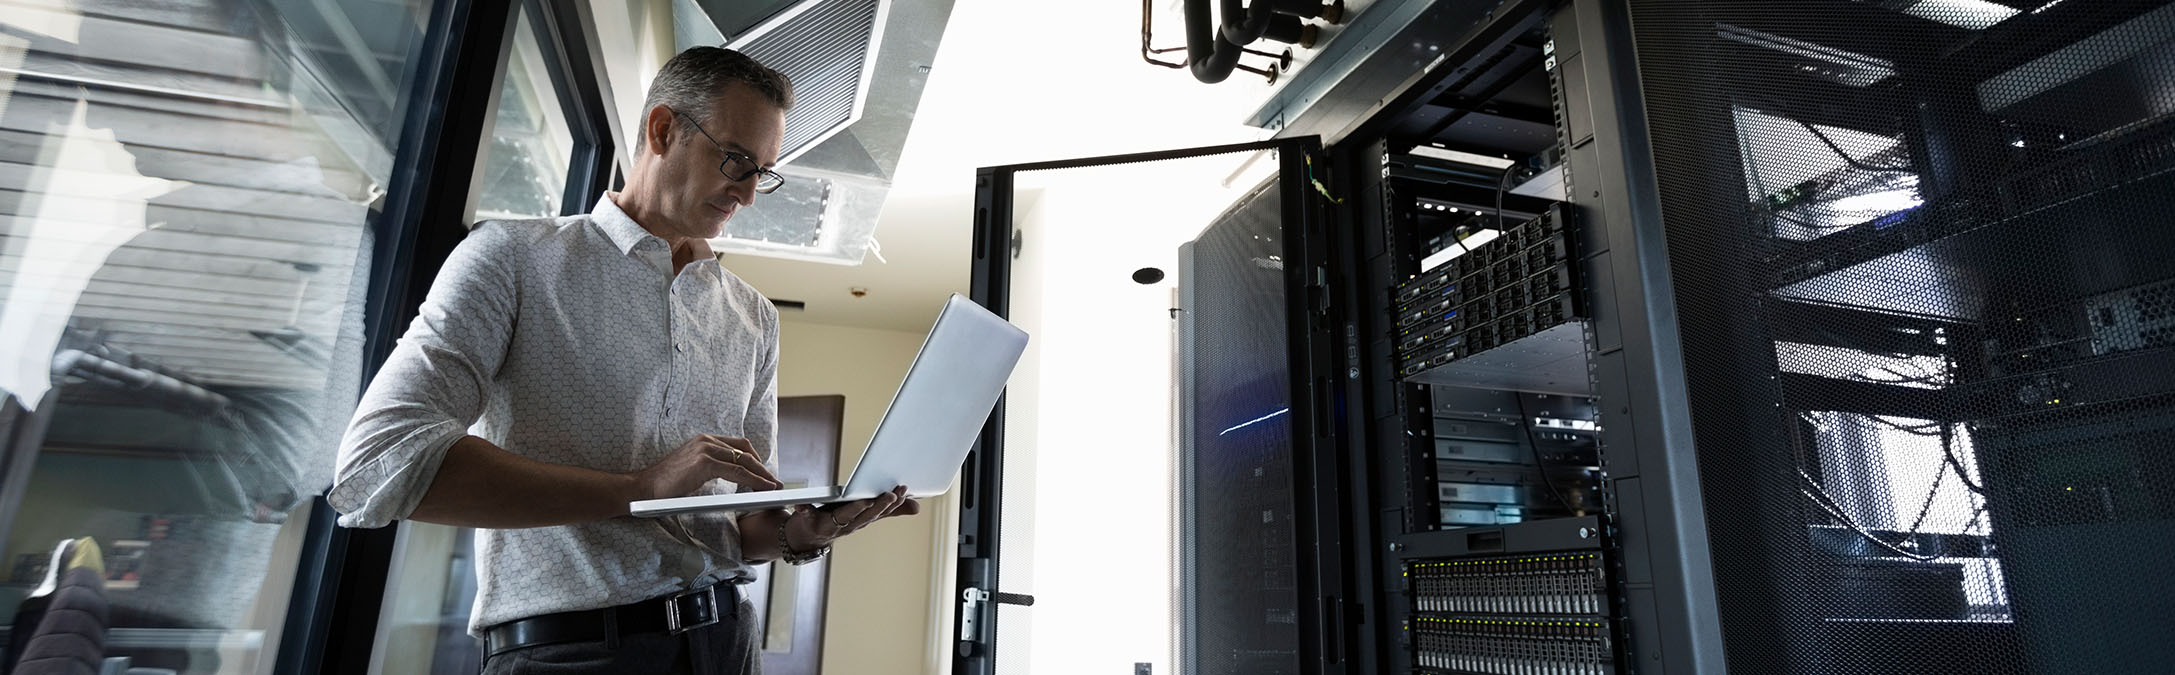 Man in server room holding laptop